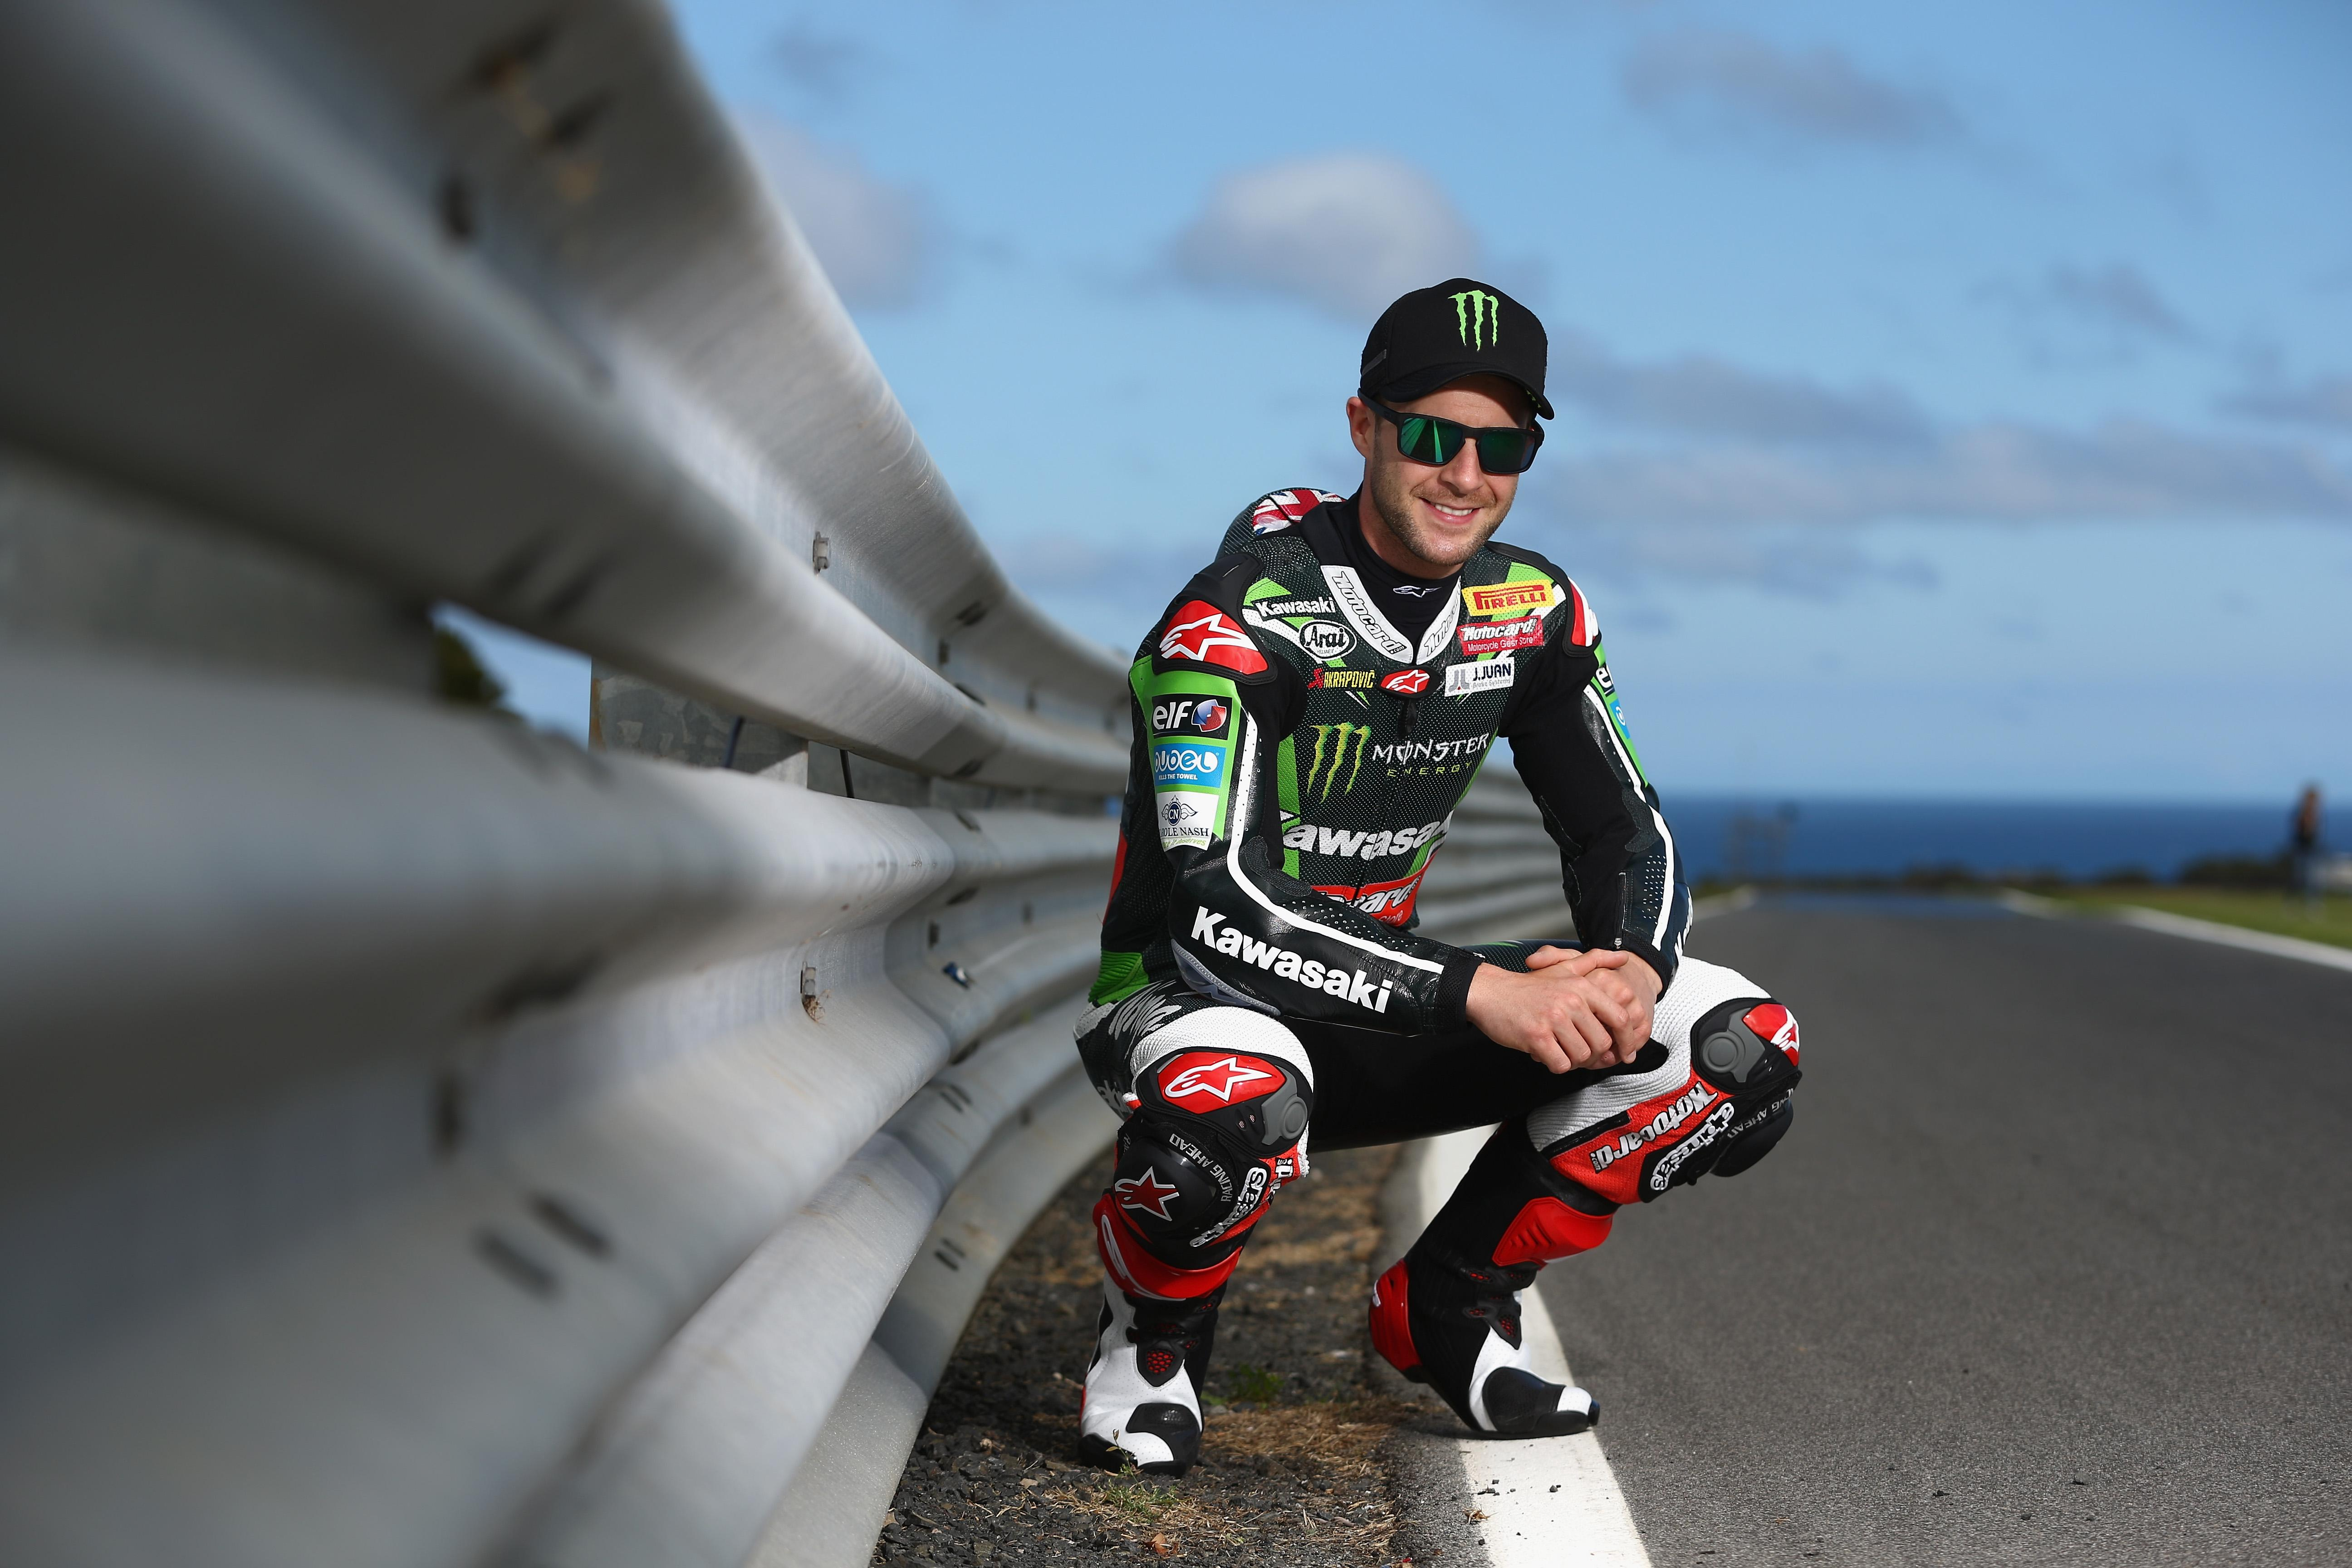 Jonathan Rea has opened up about his incredible run of injuries